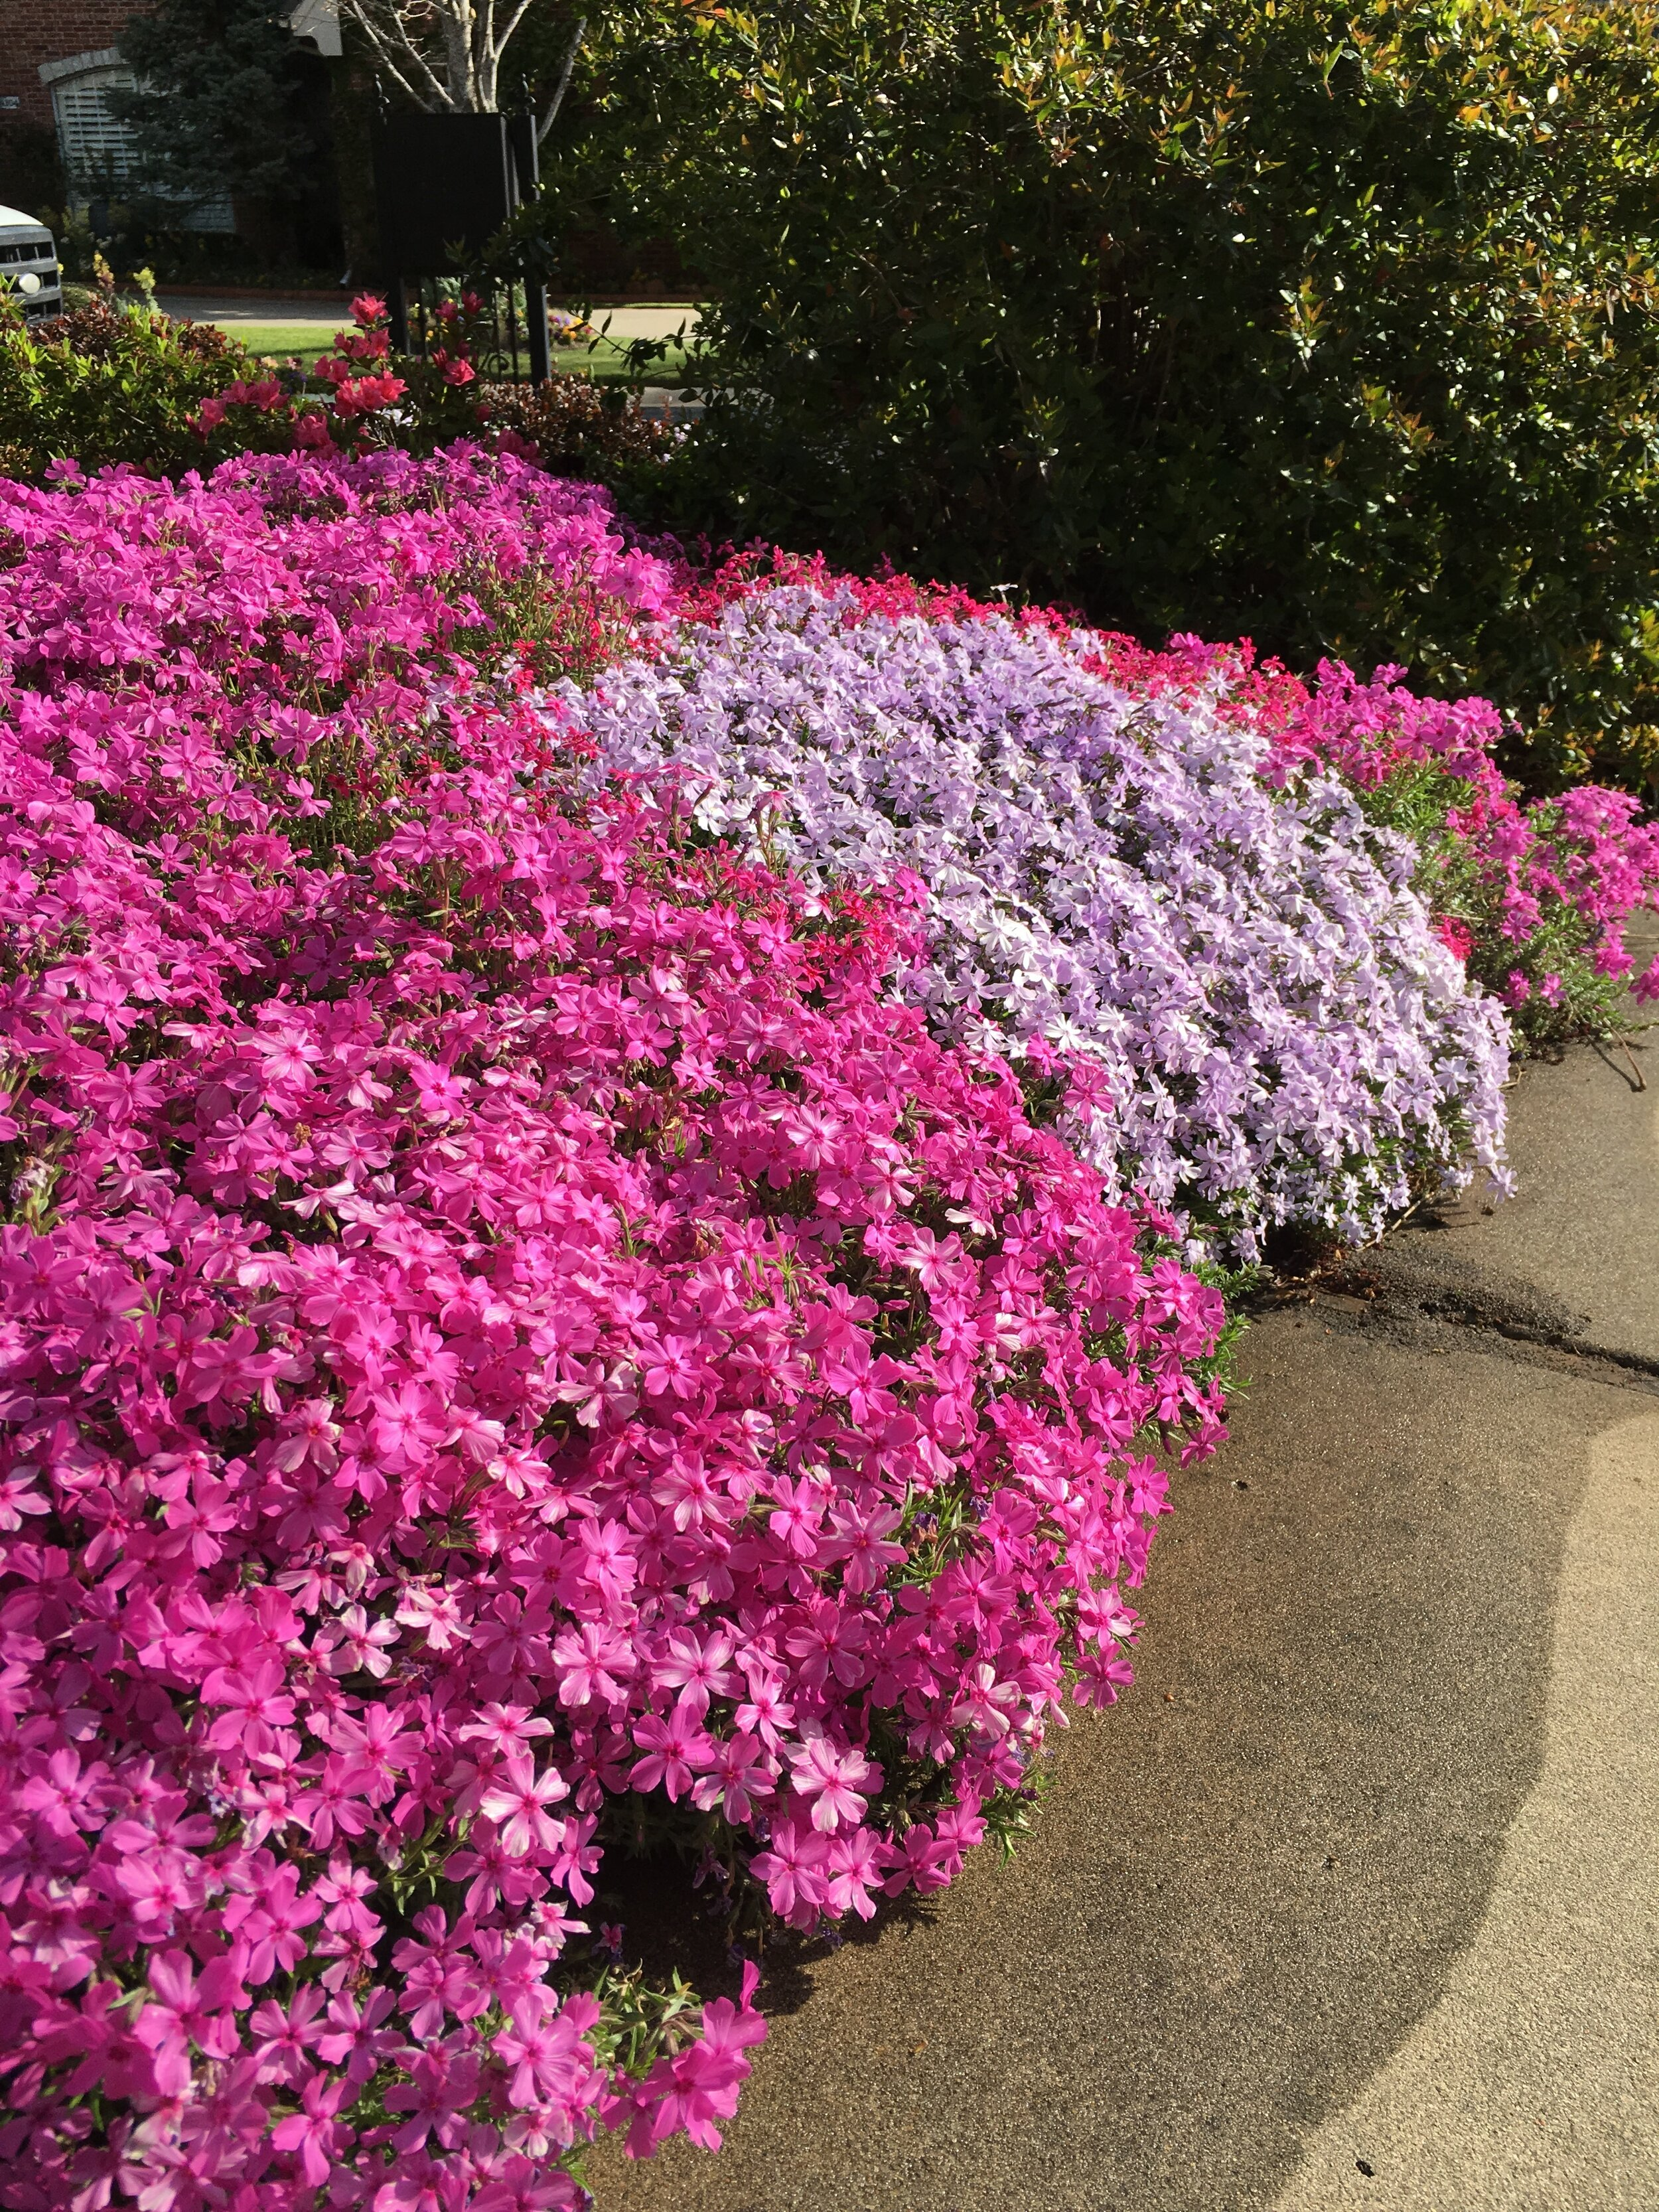 Planting creeping phlox this fall will give you a carpet of color in the spring.